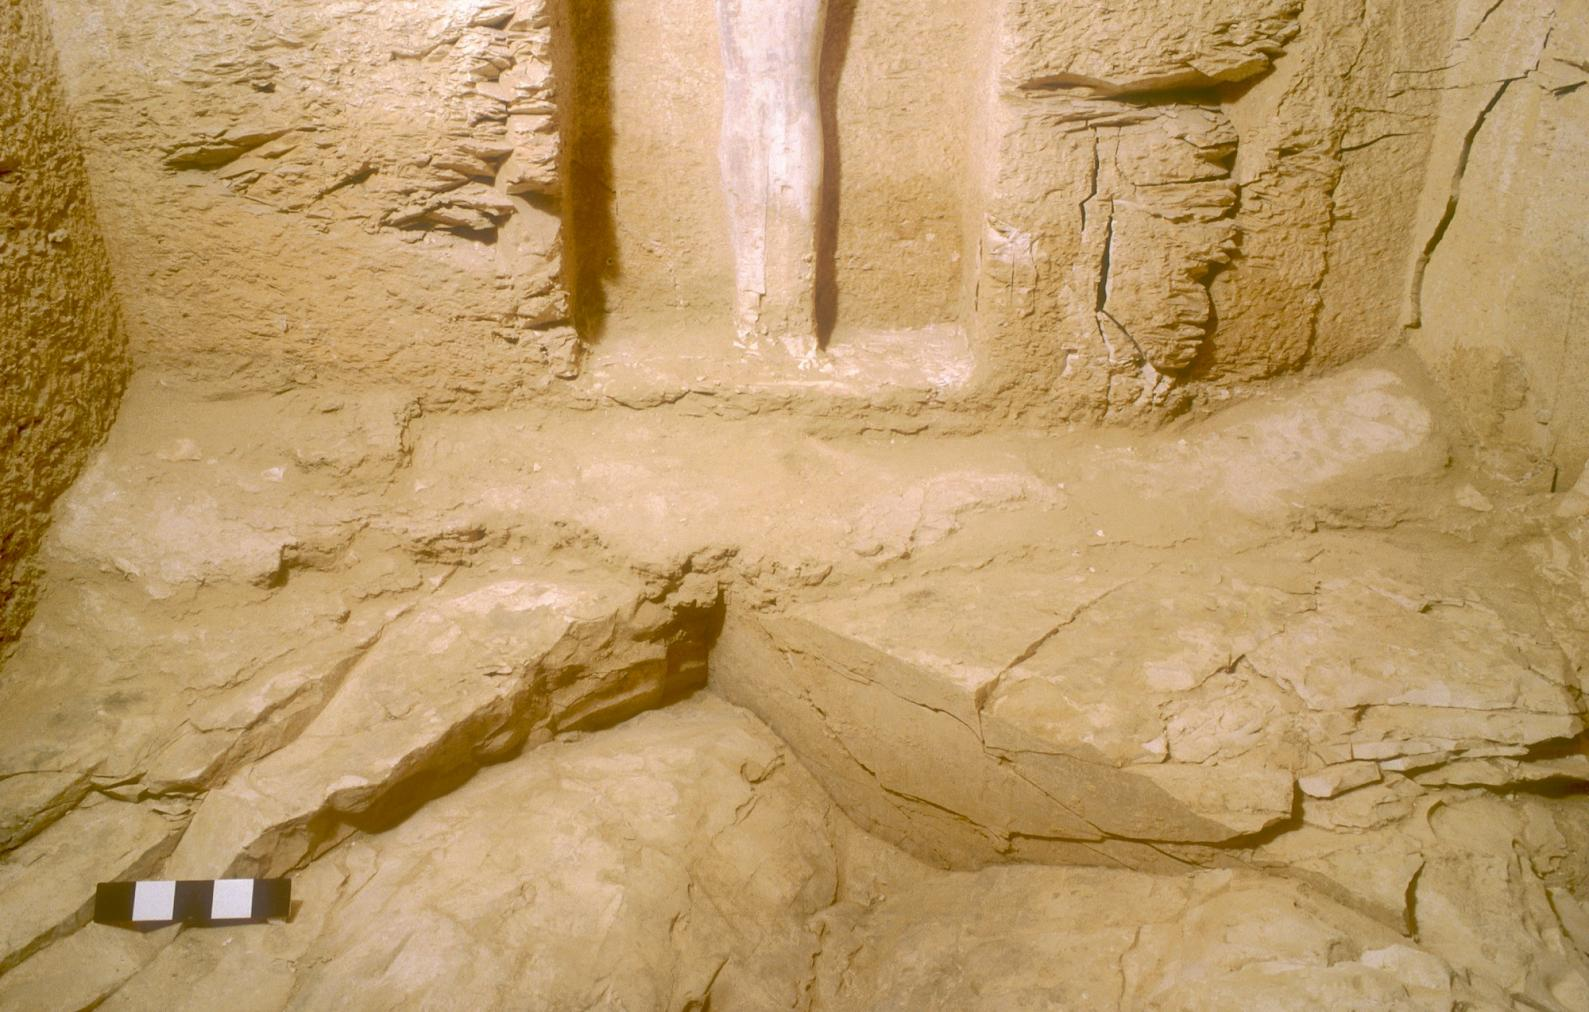 Remains of plaster flooring in corners near Osiris figure.